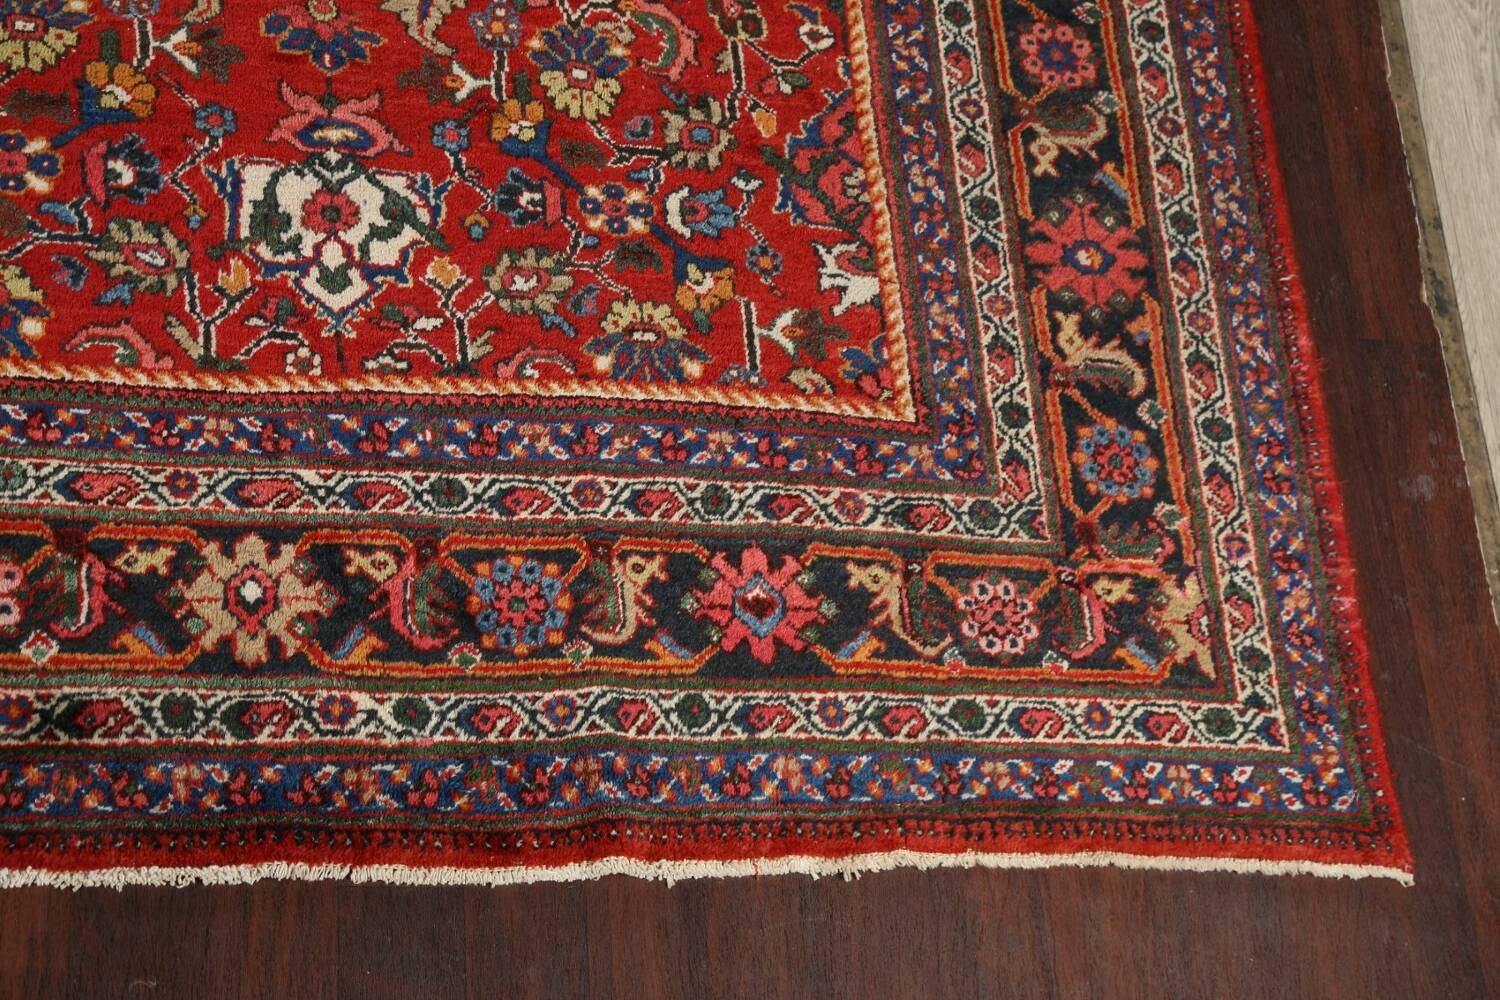 Antique 100% Vegetable Dye Sultanabad Persian Area Rug 12x17 image 5